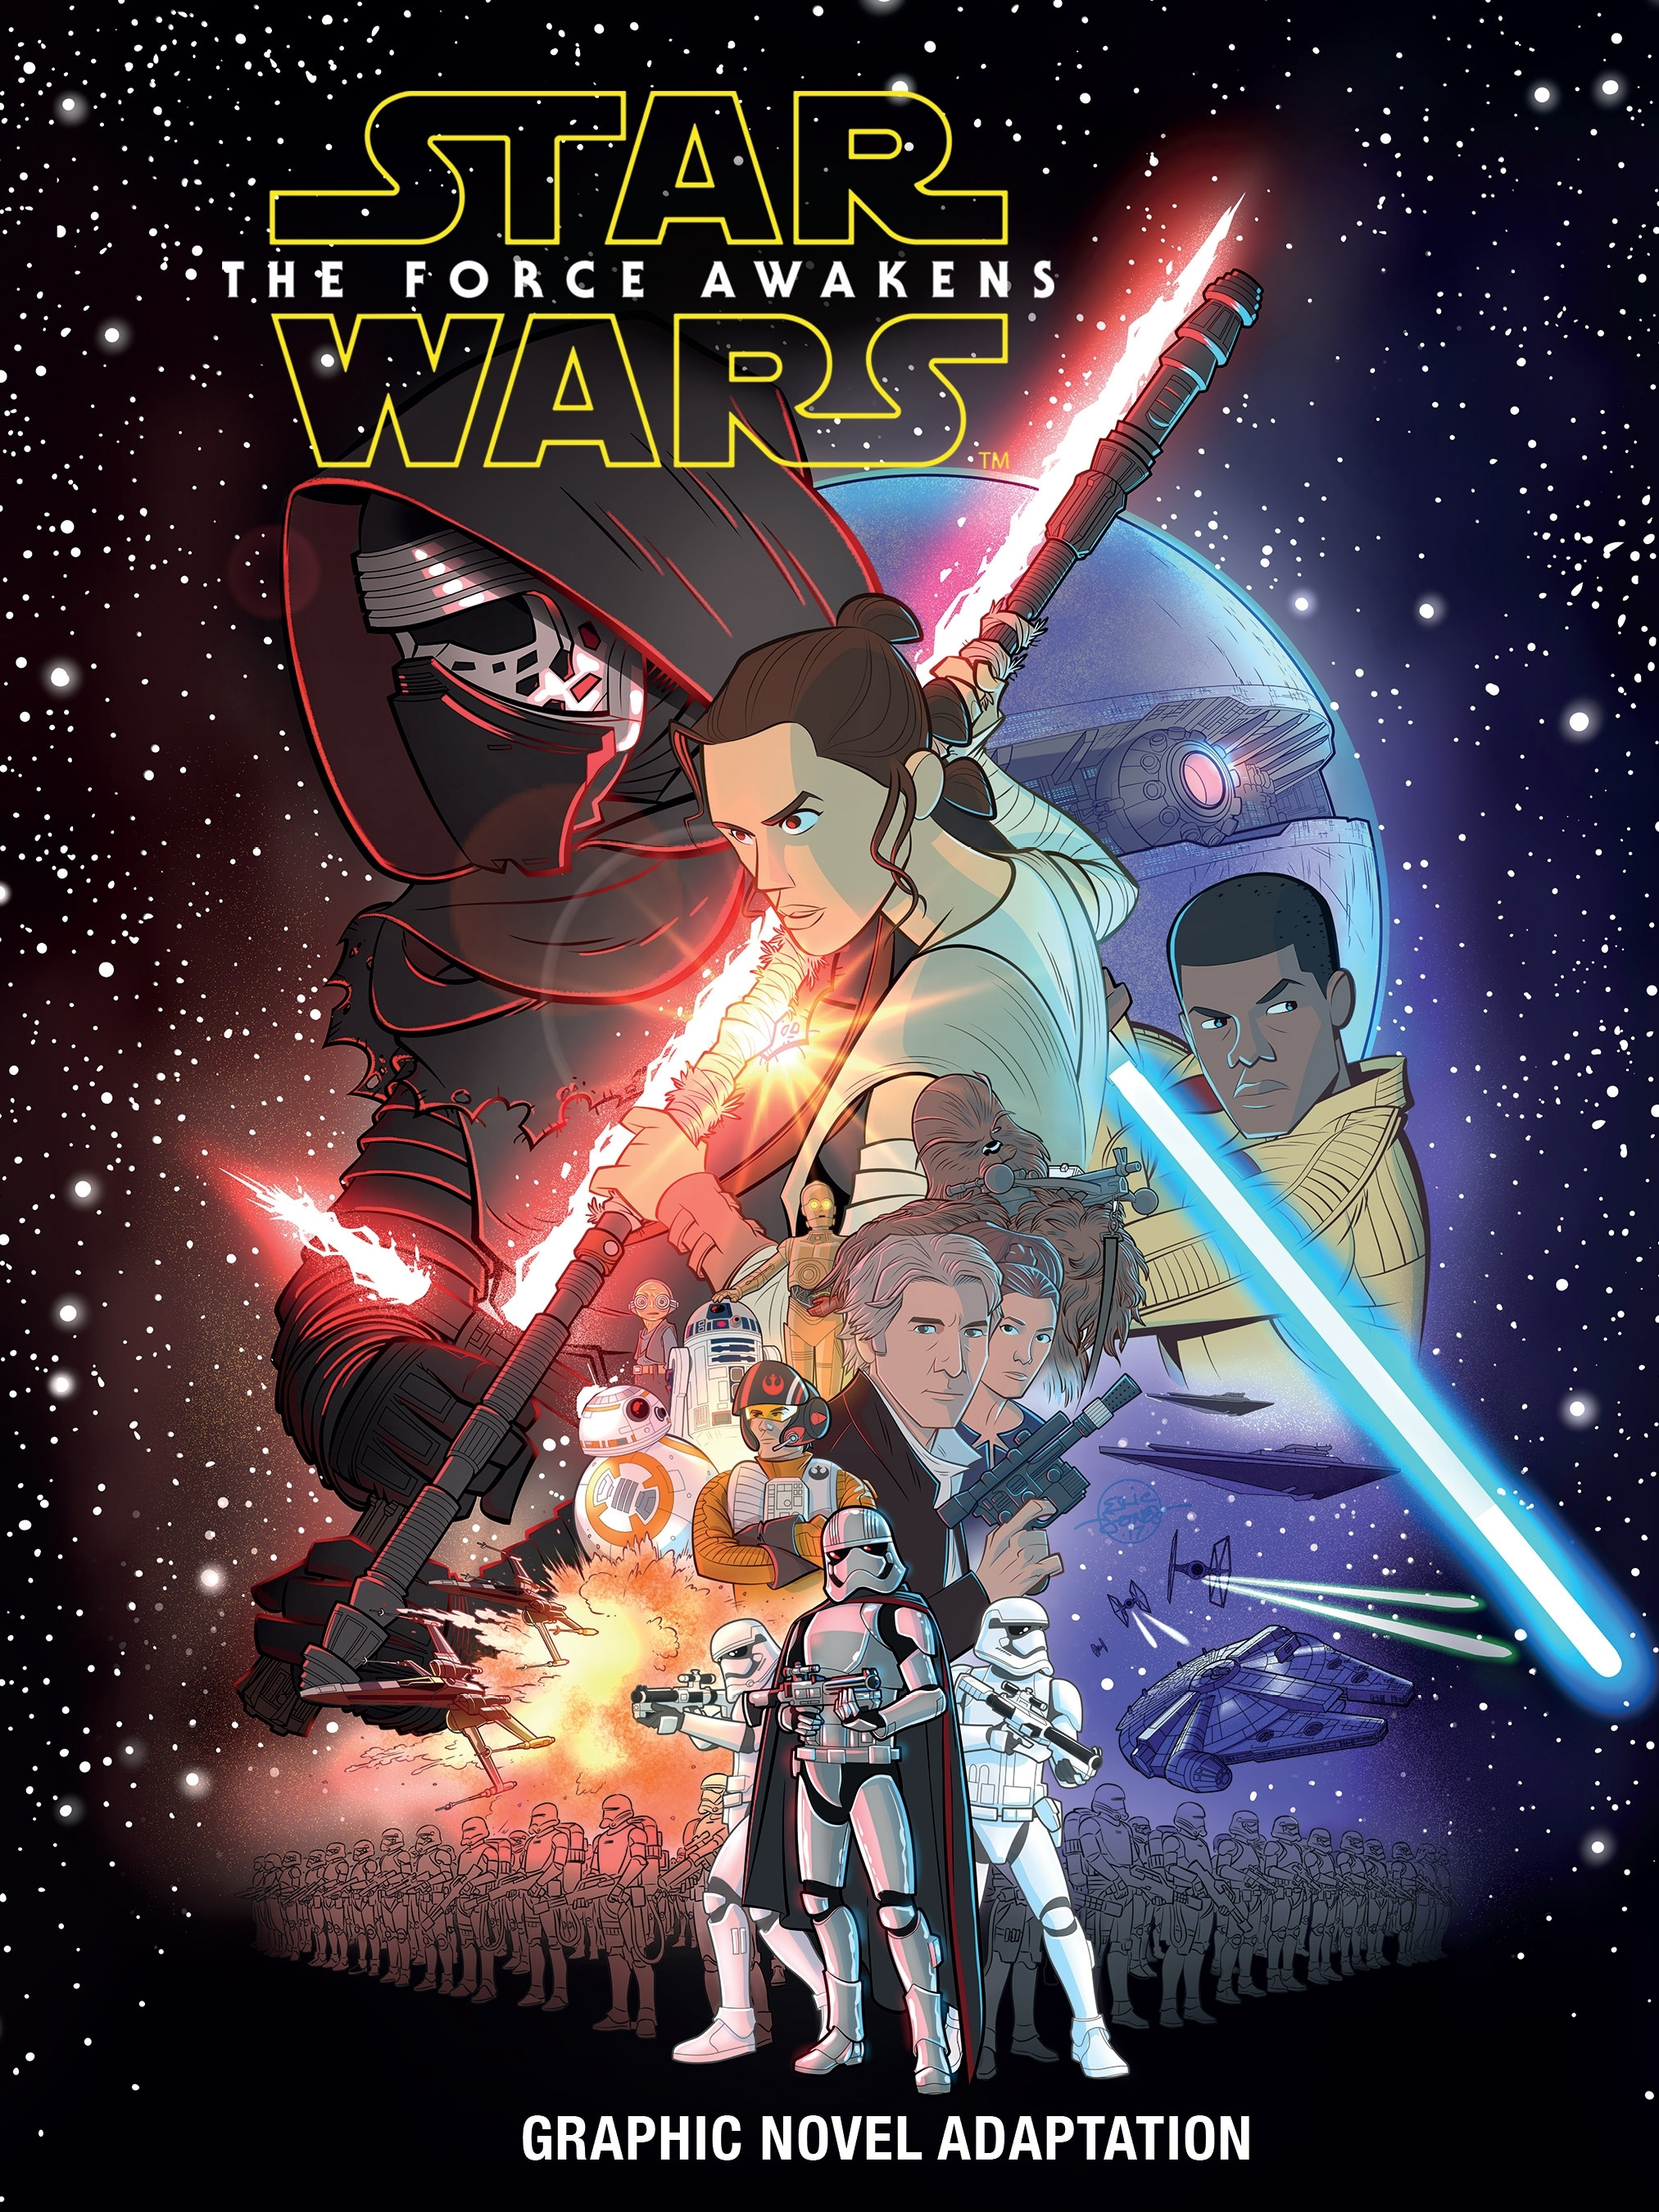 Star Wars: The Force Awakens Graphic Novel Adaptation